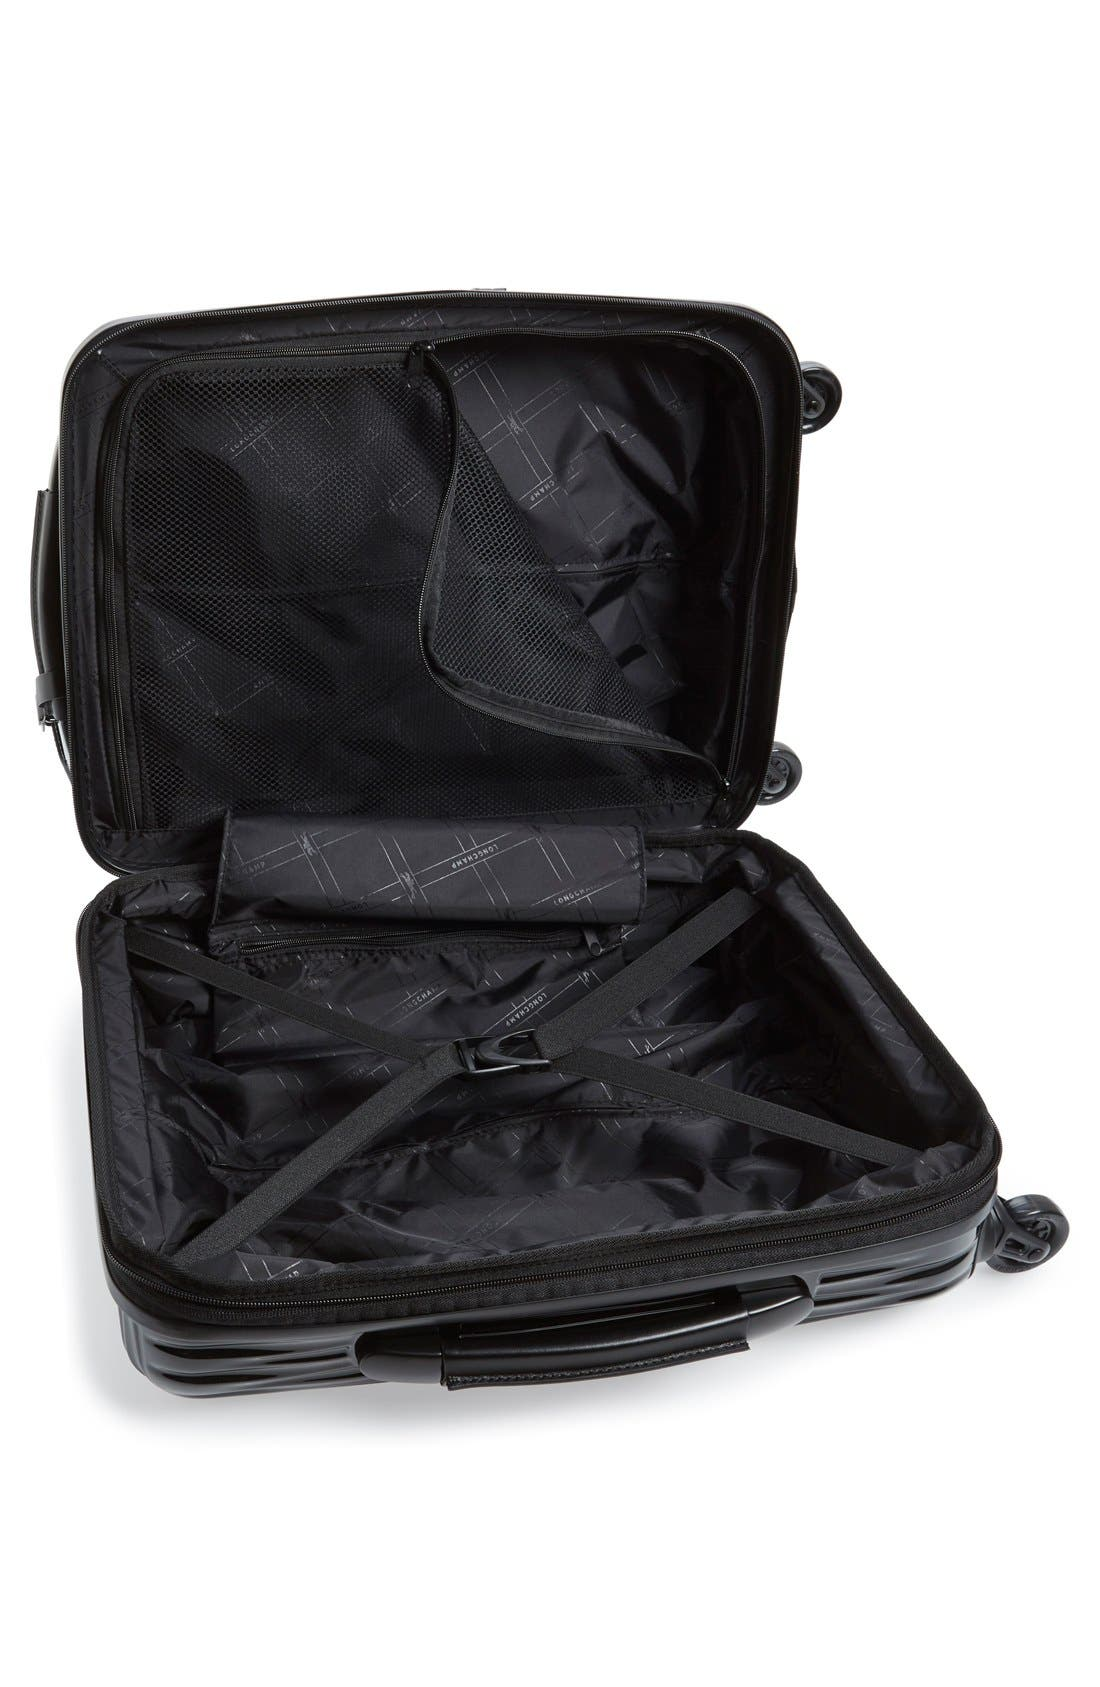 'Fairval' Four-Wheeled Hard Shell Suitcase,                             Alternate thumbnail 4, color,                             Black